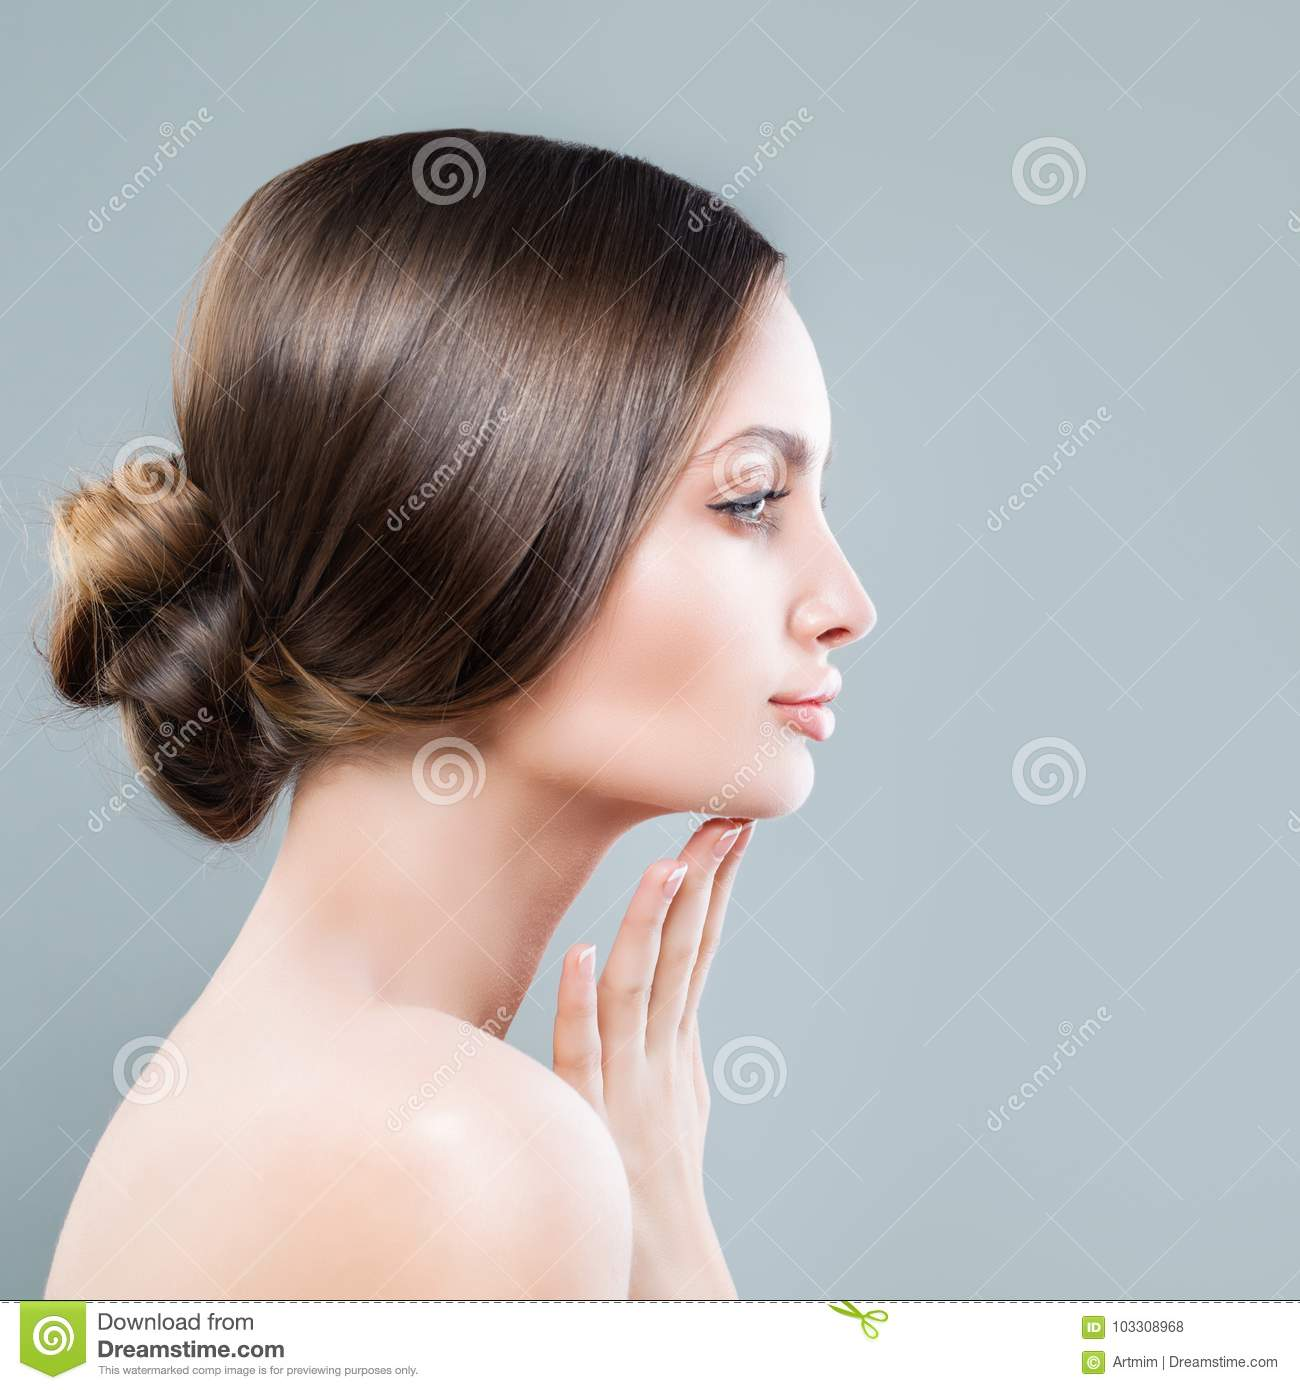 Perfect Female Face Closeup. Spa Woman with Healthy Skin